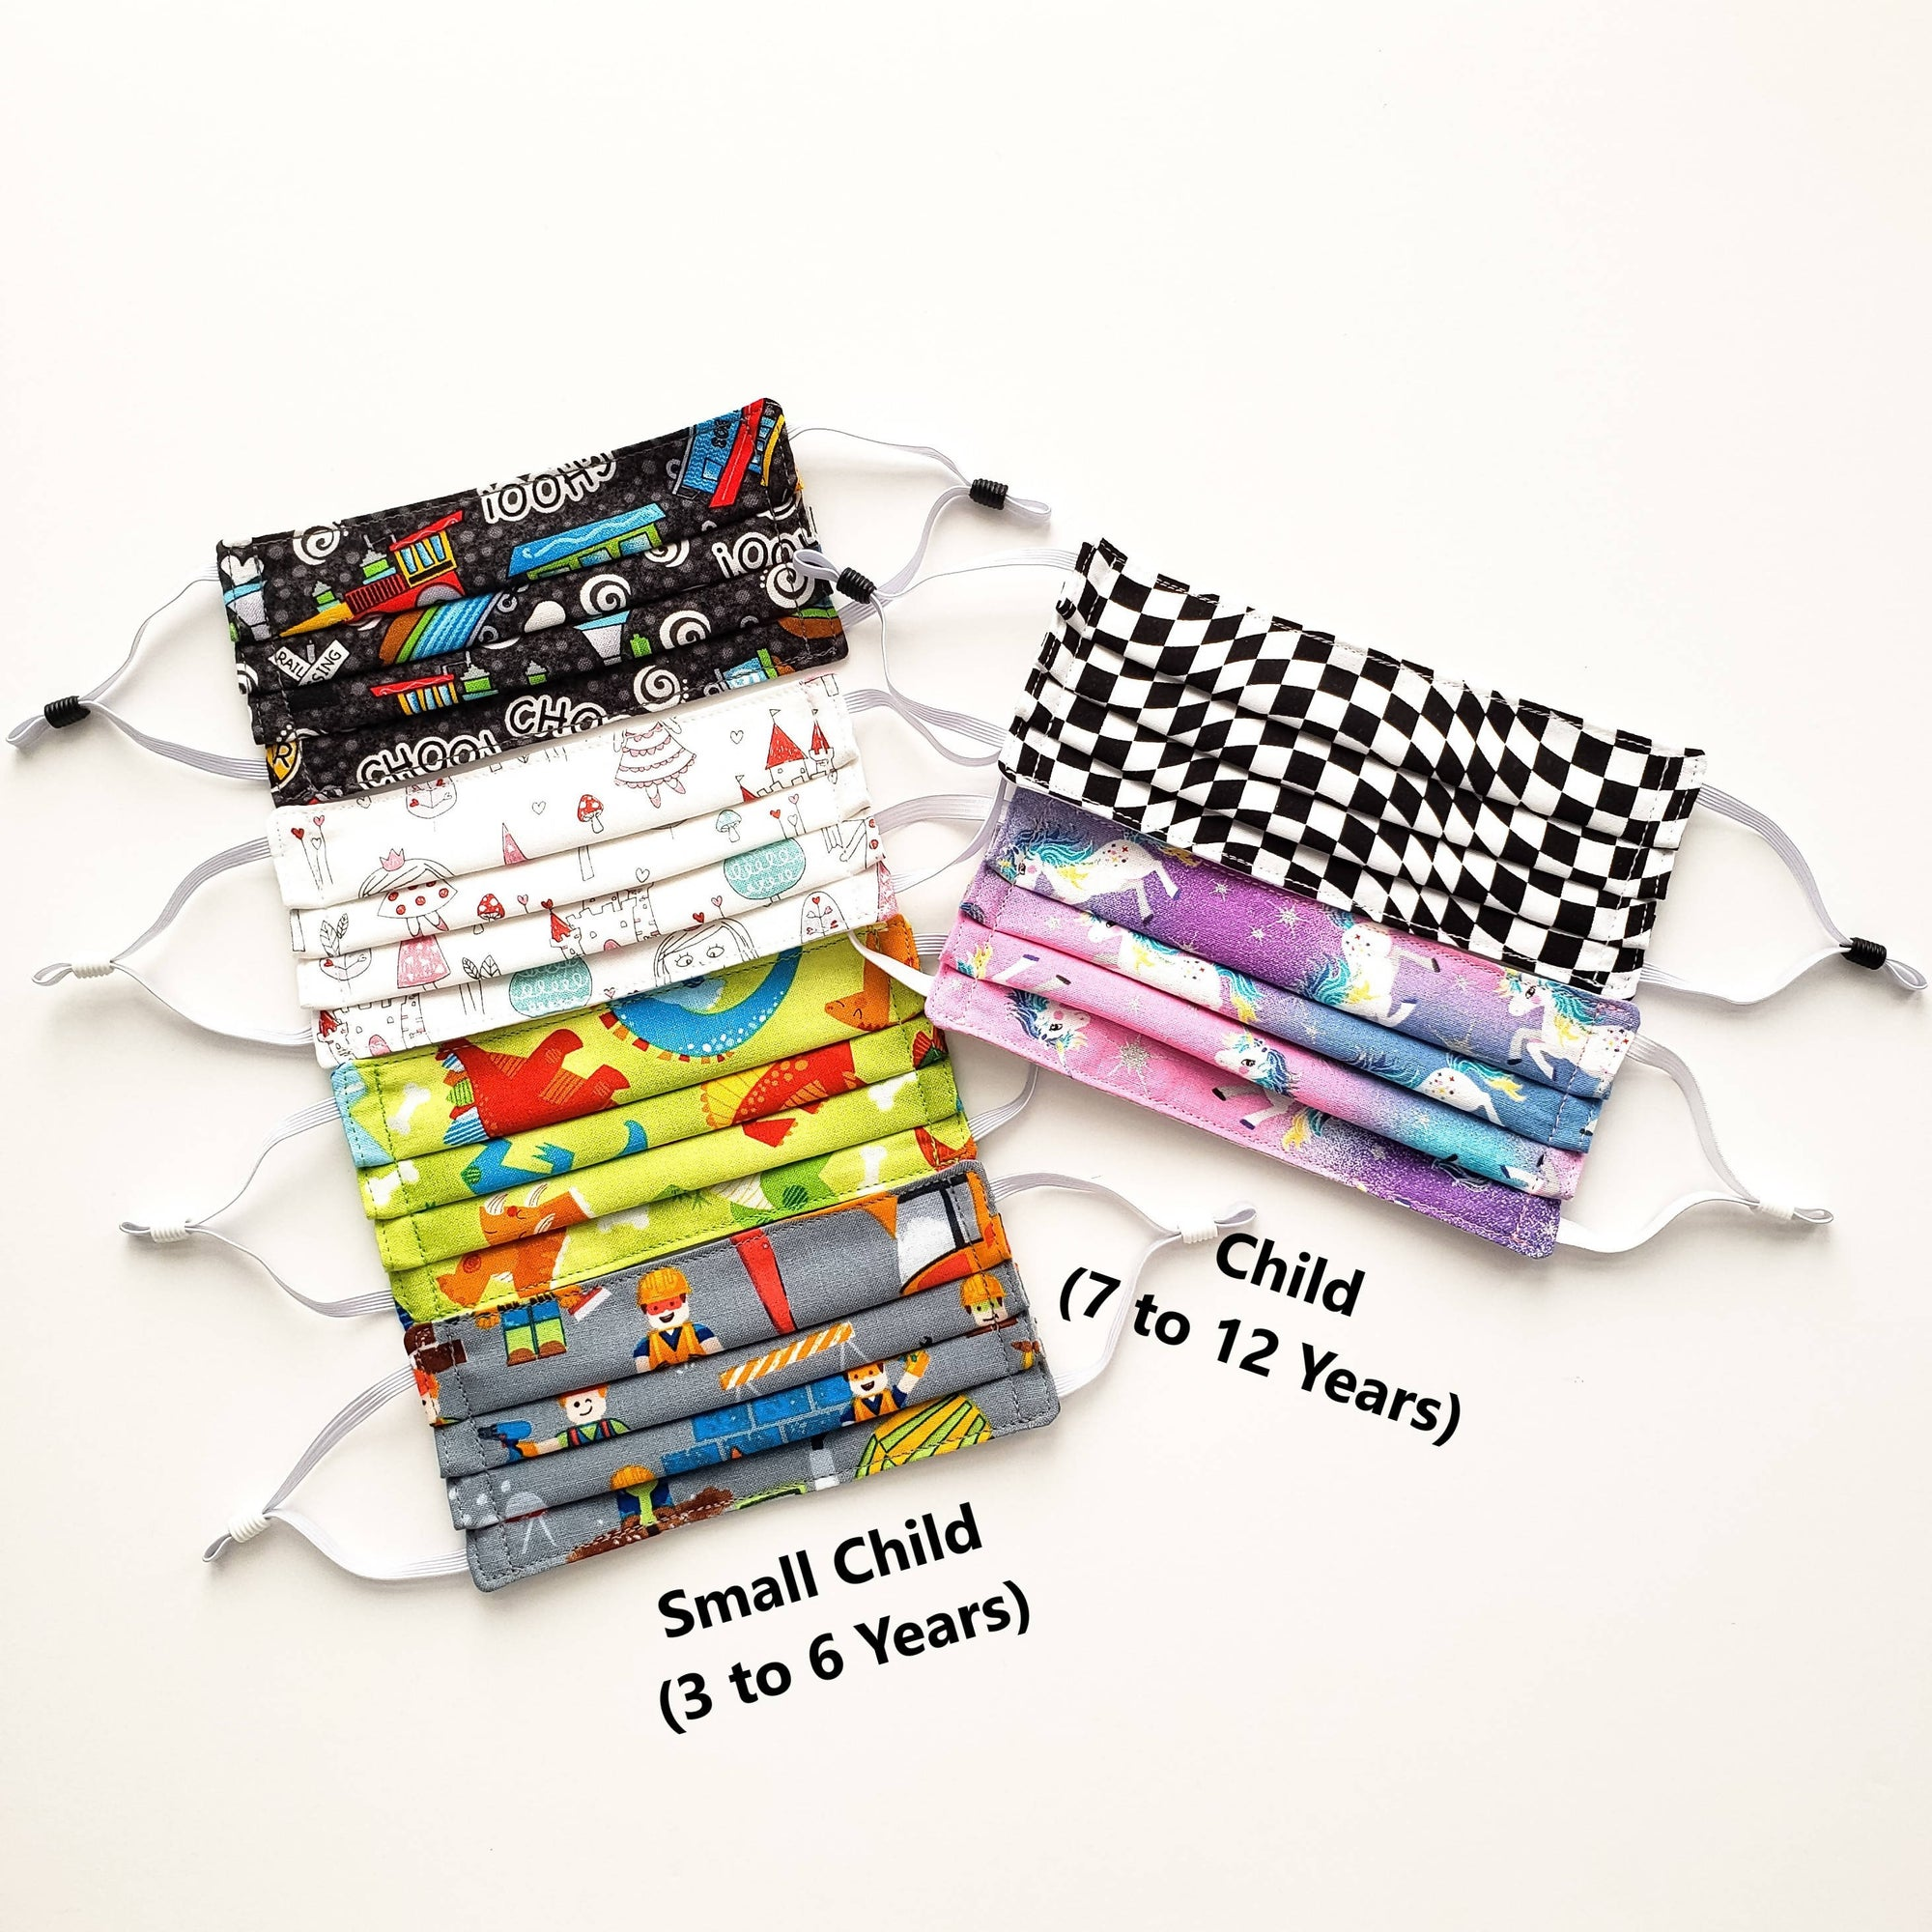 Kids Patterned Face Mask Rectangular Pleated (2 sizes, several fabric choices) - Free Shipping.